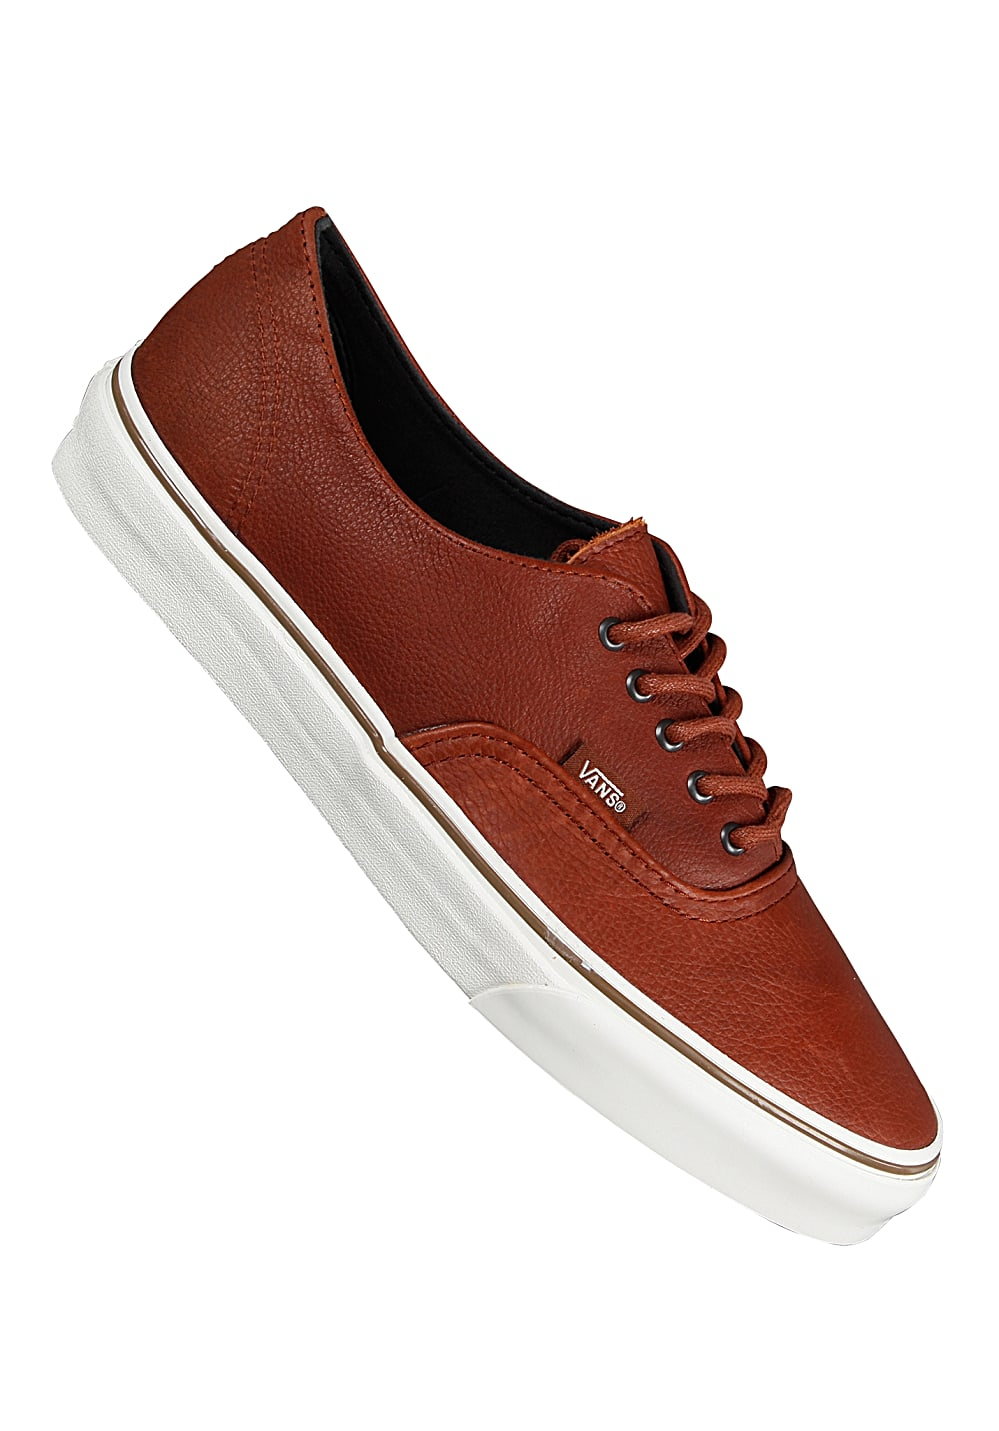 Sneakers Decon Für Authentic Ca Herren Vans Braun T1lJFKc